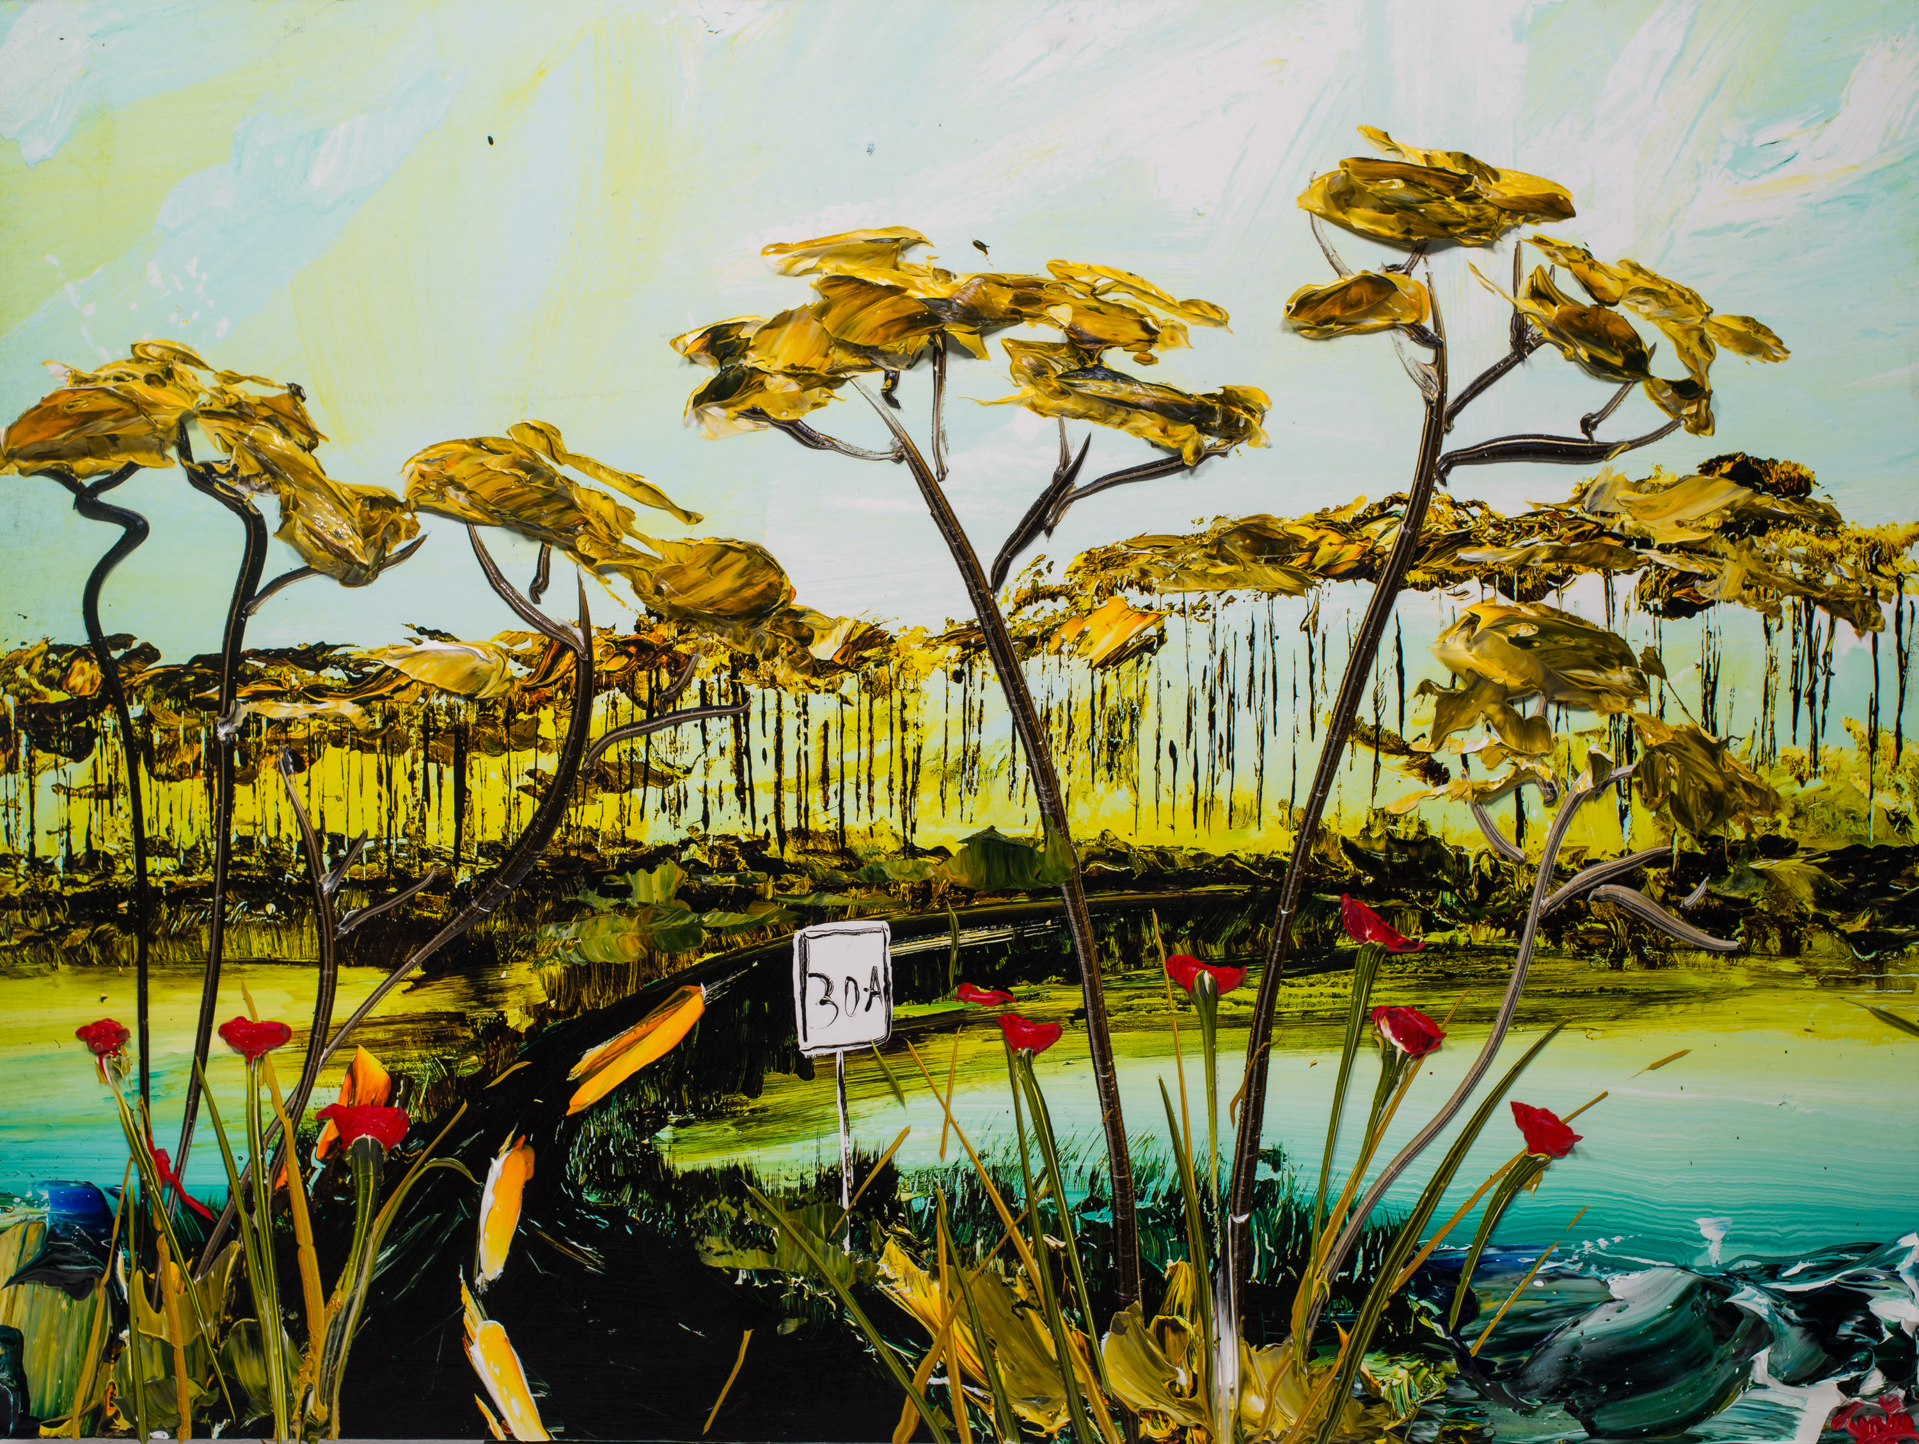 30A LAKESCAPE HPAE8/50 by JUSTIN GAFFREY